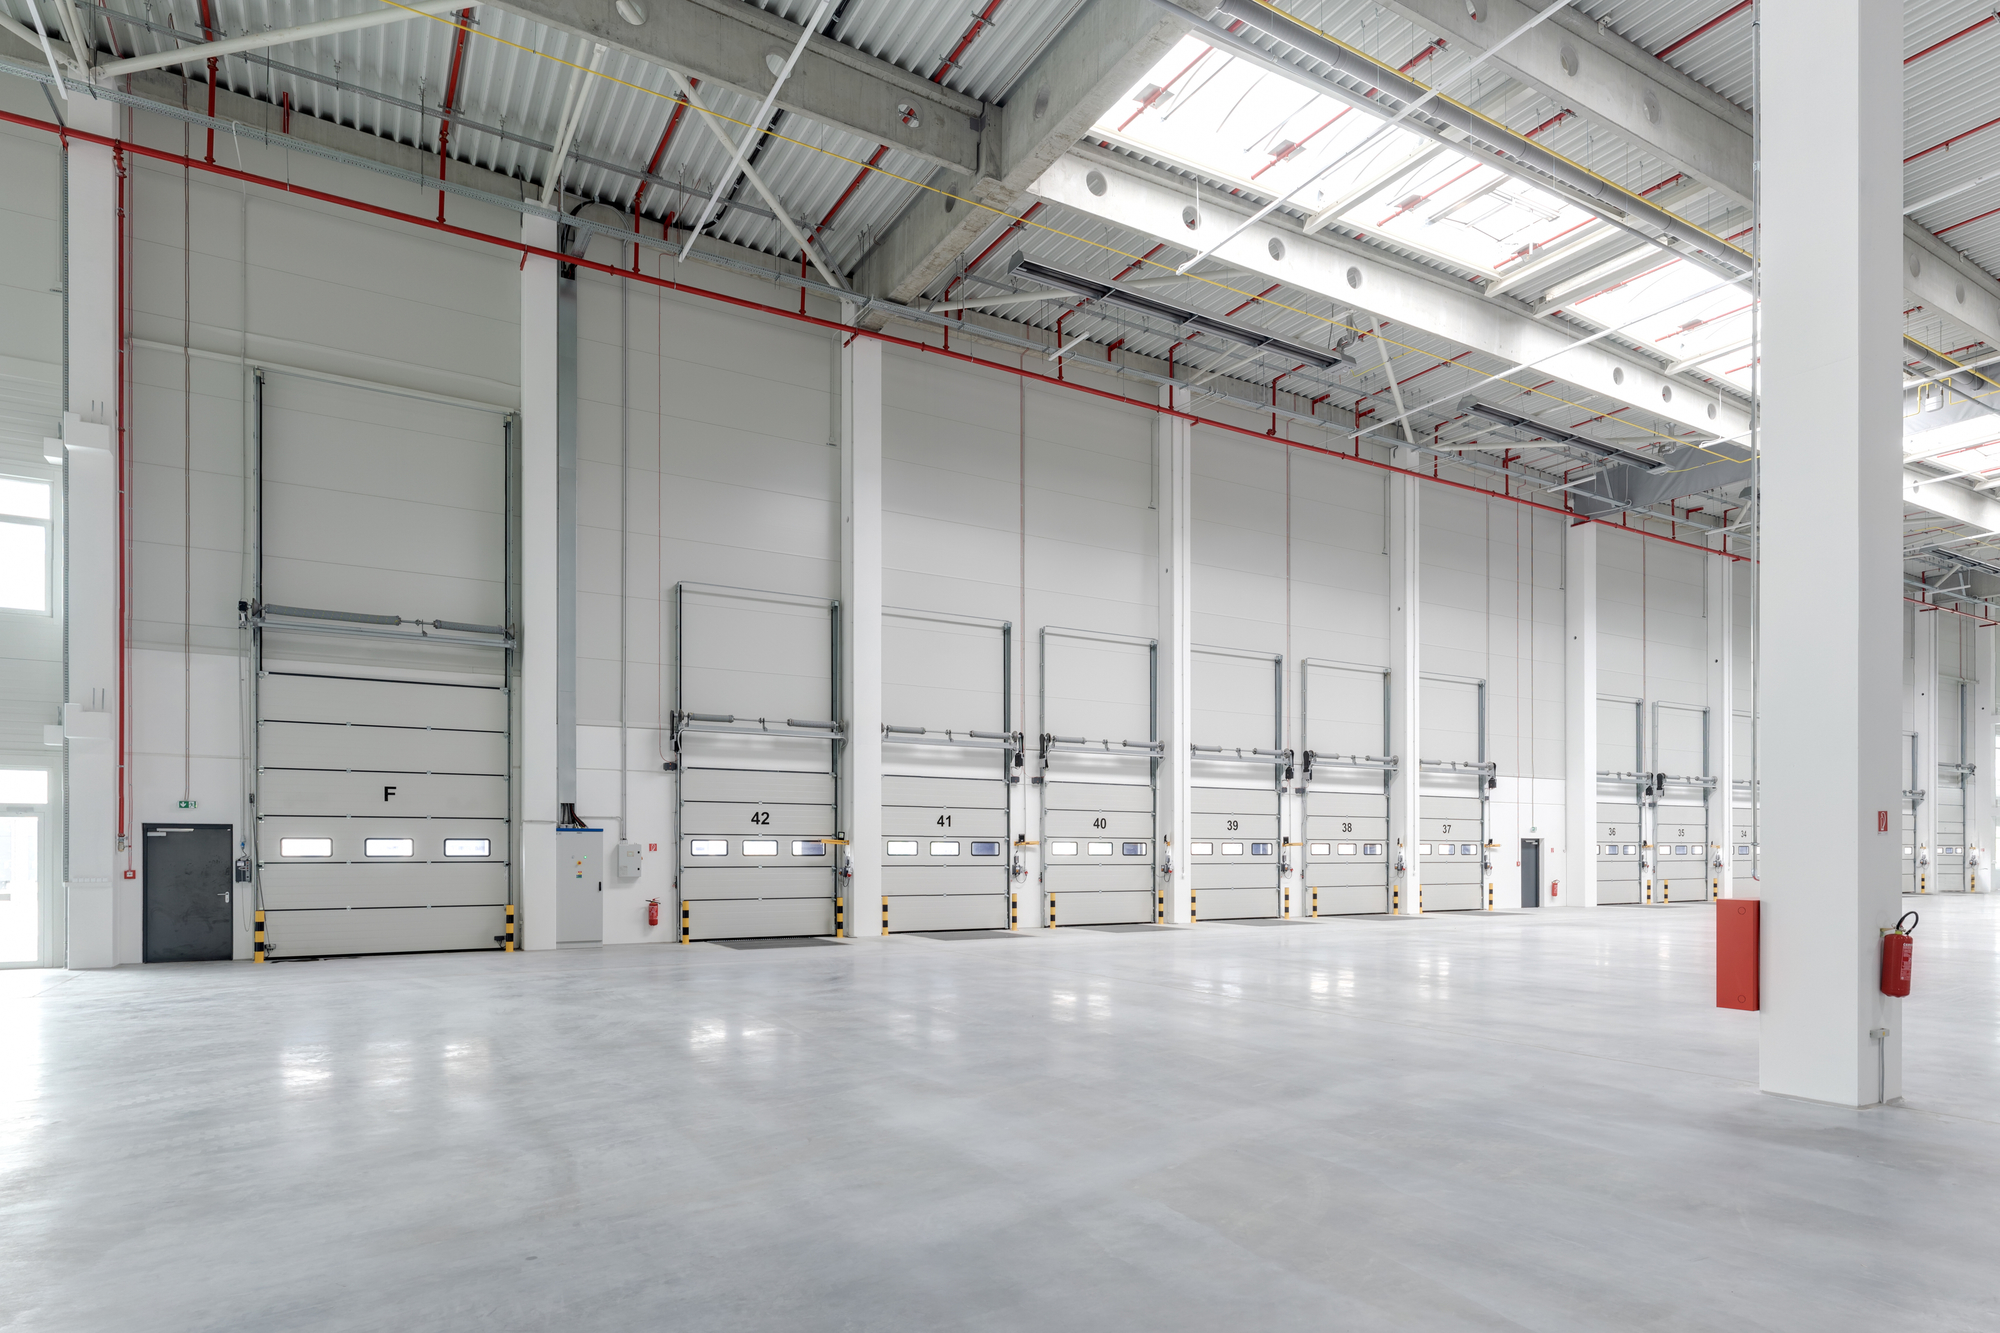 Warehouse With Commercial Floor Coating for Use Commercial Floor Coatings Blog